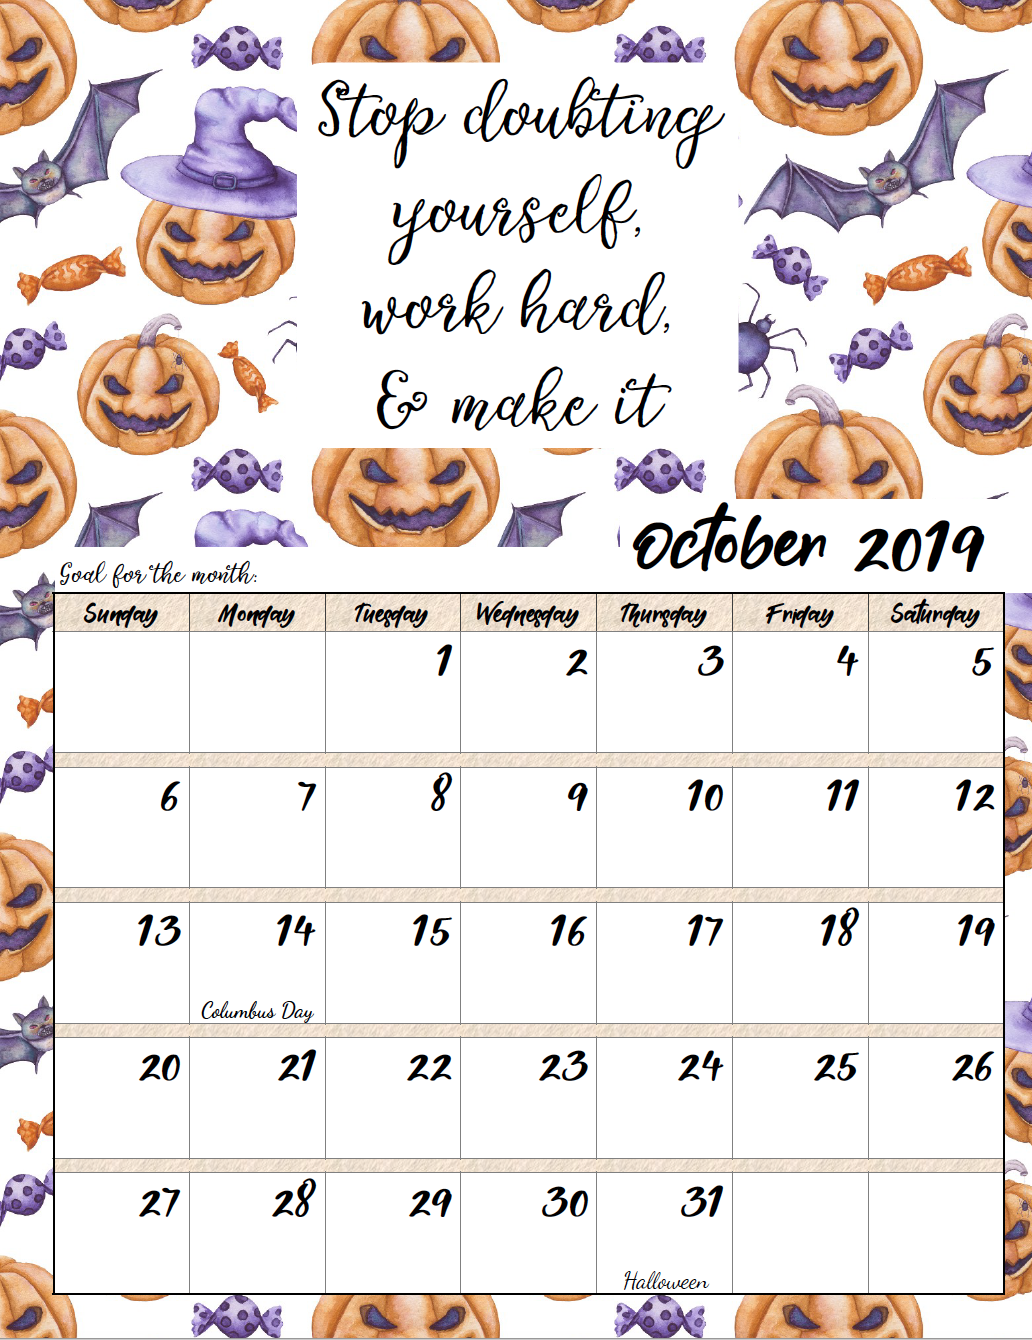 October. FREE Printable 2019 Monthly Motivational Calendars. Space for setting goals, different motivational quote each month, holidays marked. #free #freeprintable #printable #calendar #motivation